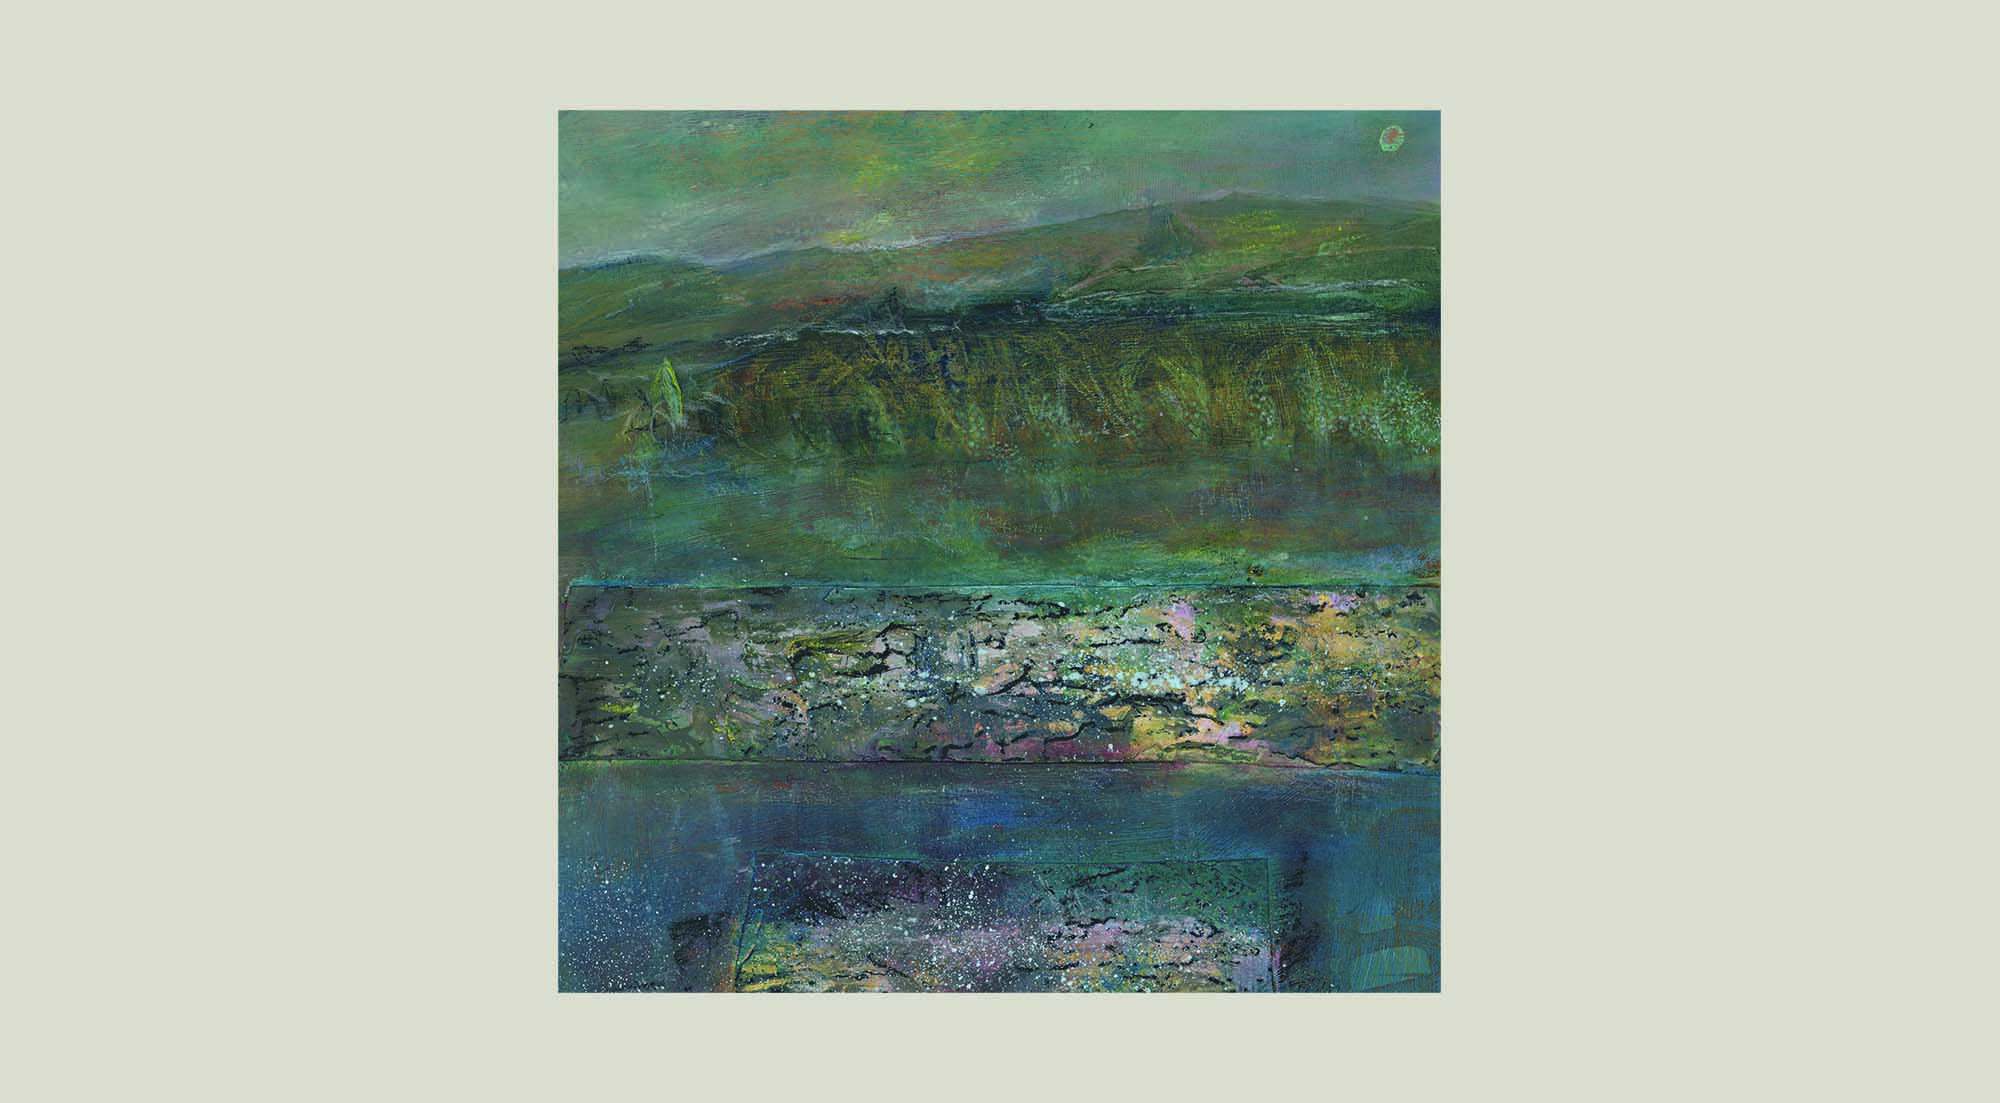 textured paint on canvas 'calm at glencorse'